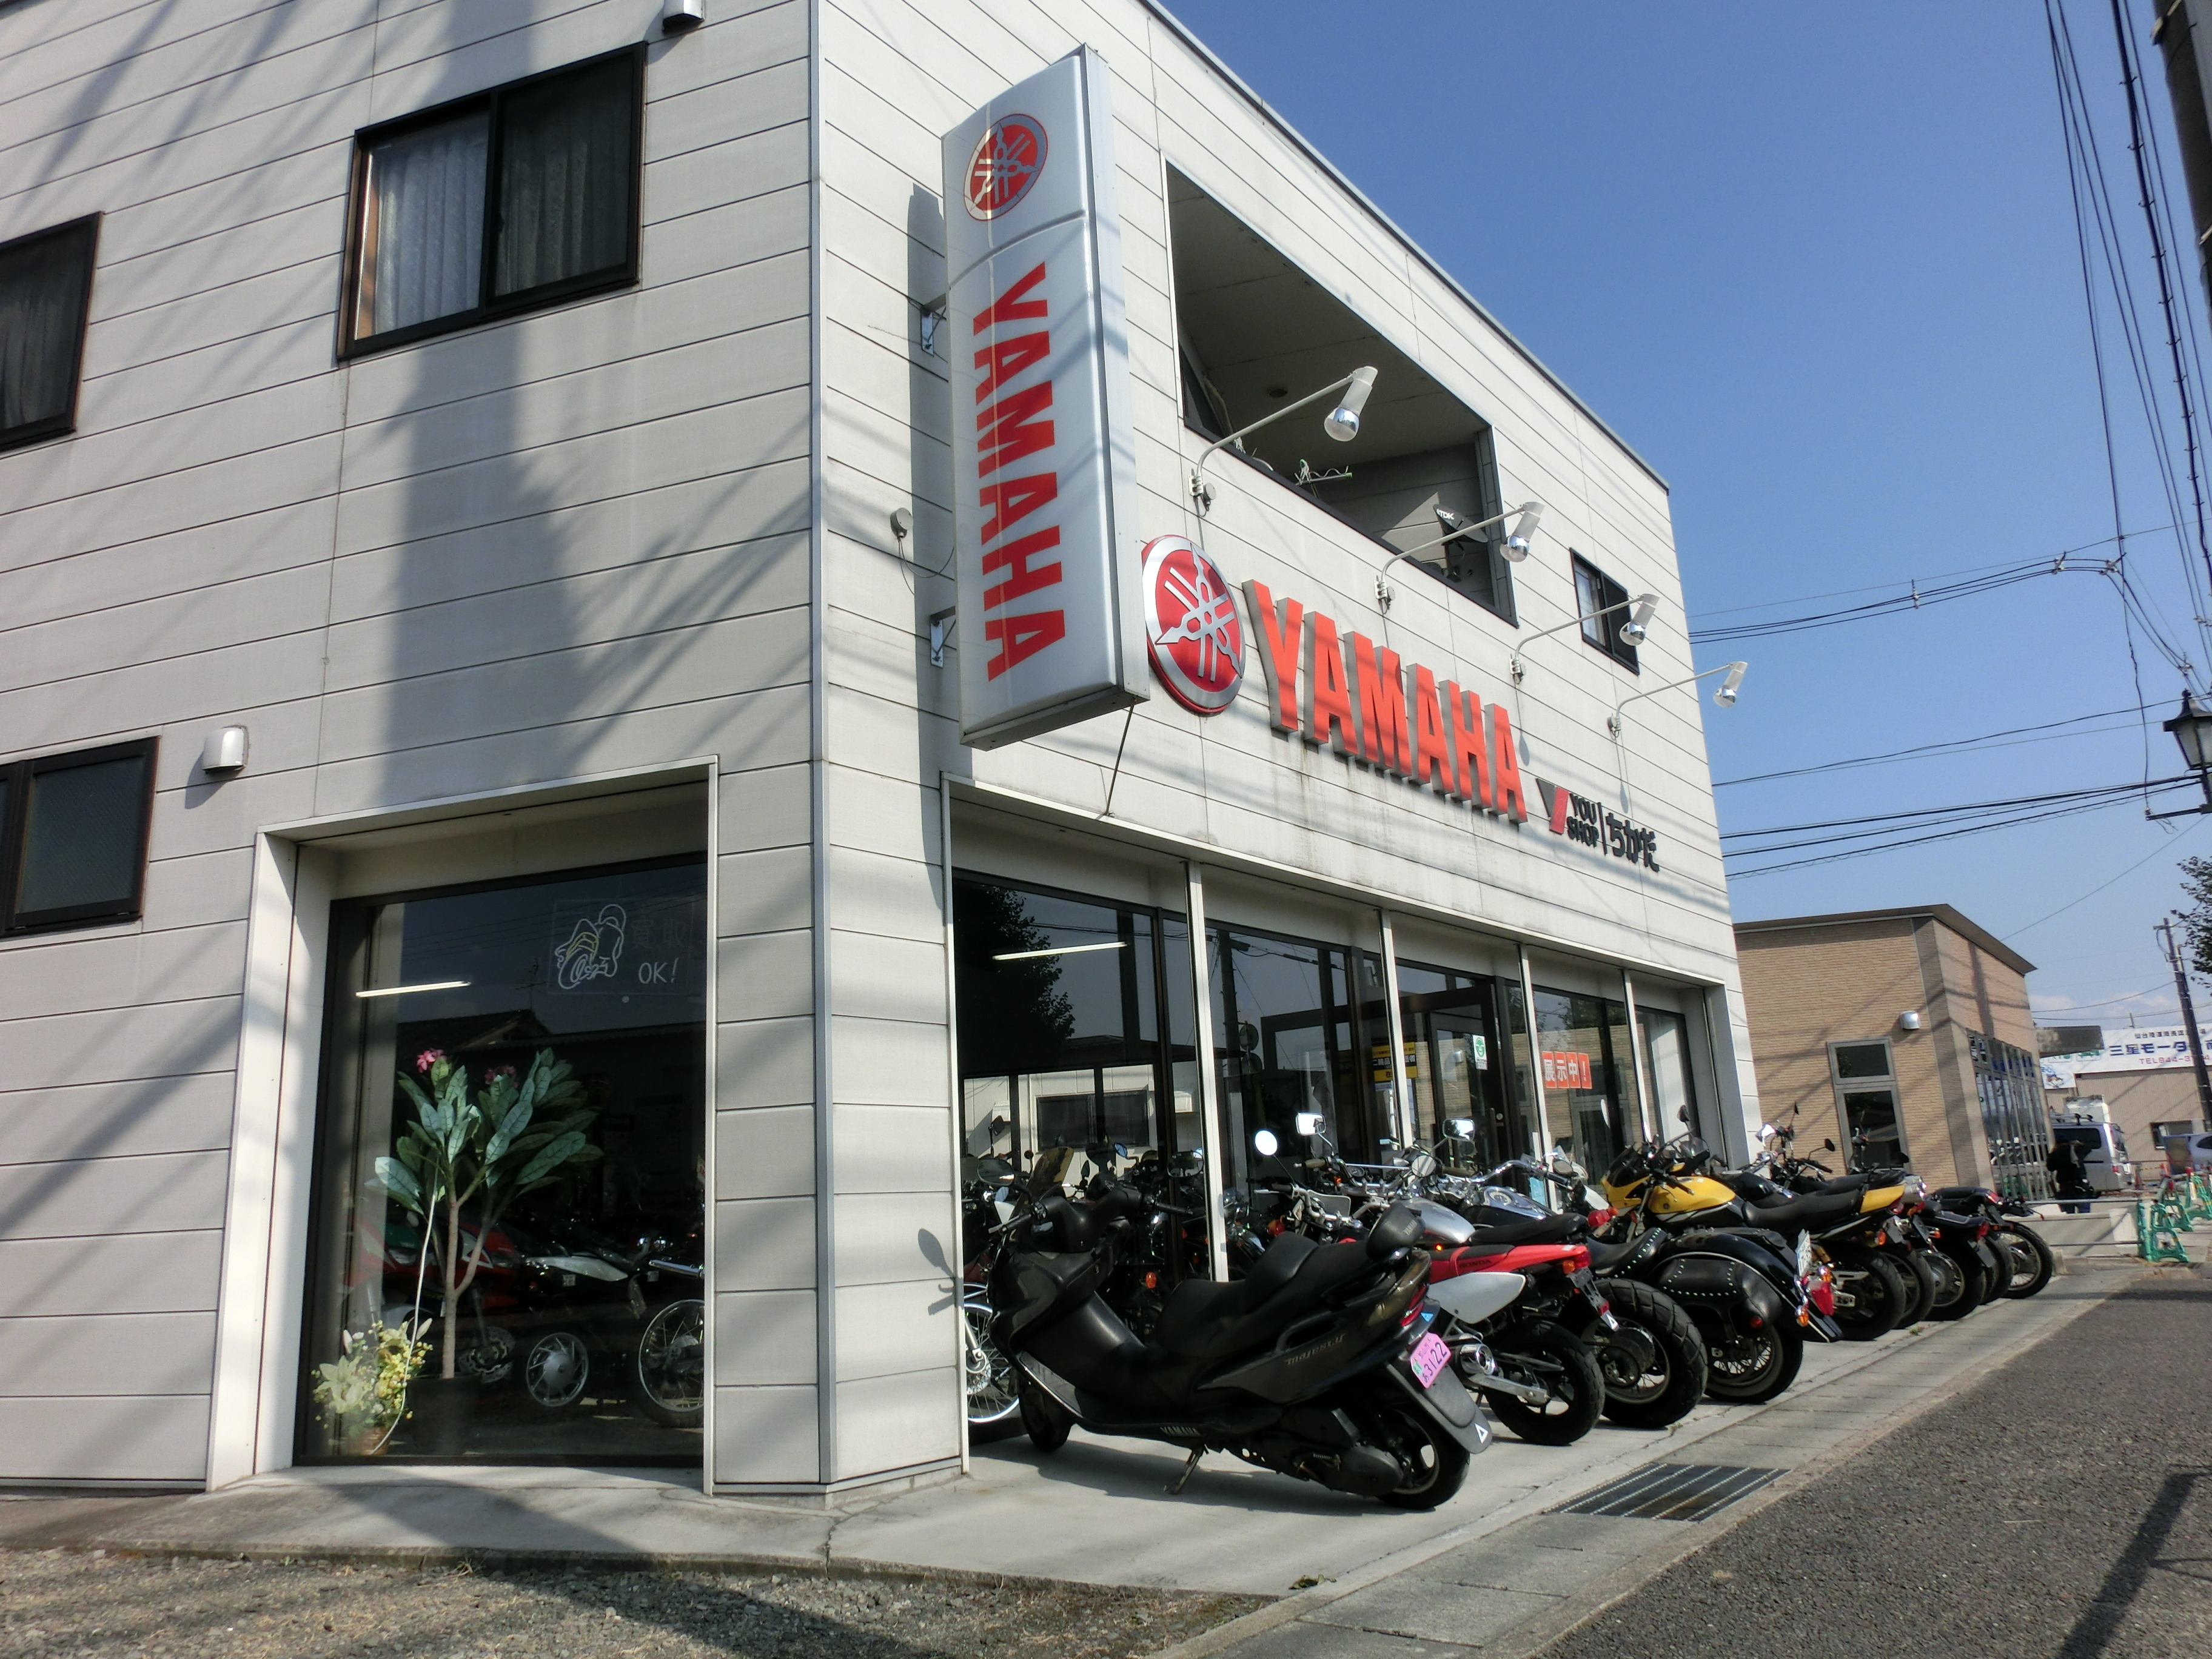 YOU SHOP ちかだバイク専門